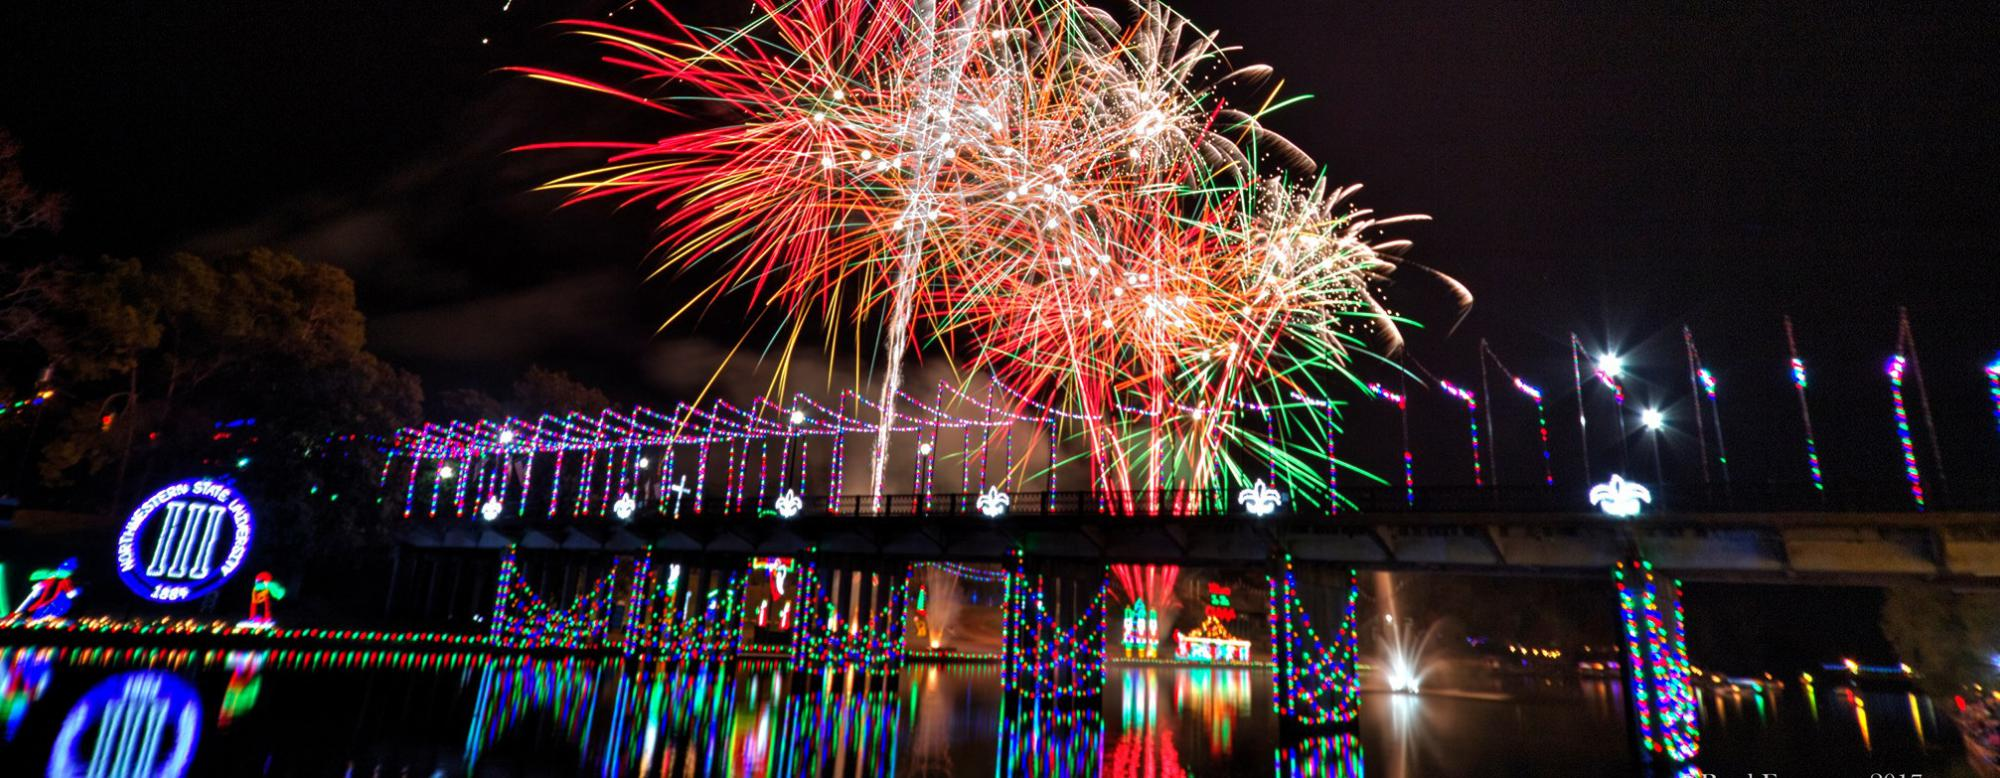 Natchitoches Christmas fireworks